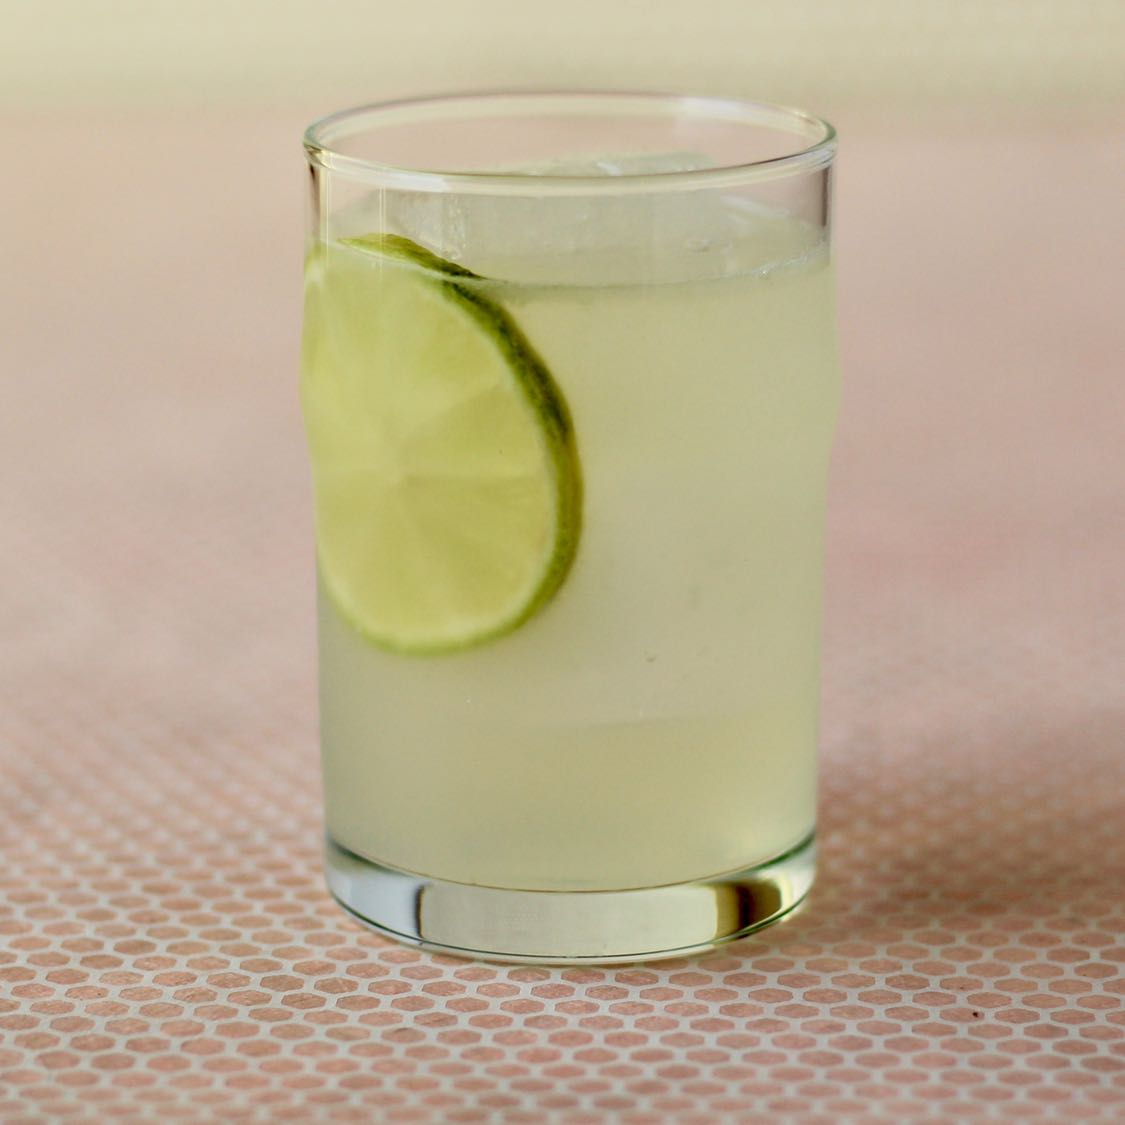 Gimlet Cocktail - Classic Fancy Gin Sour Recipe